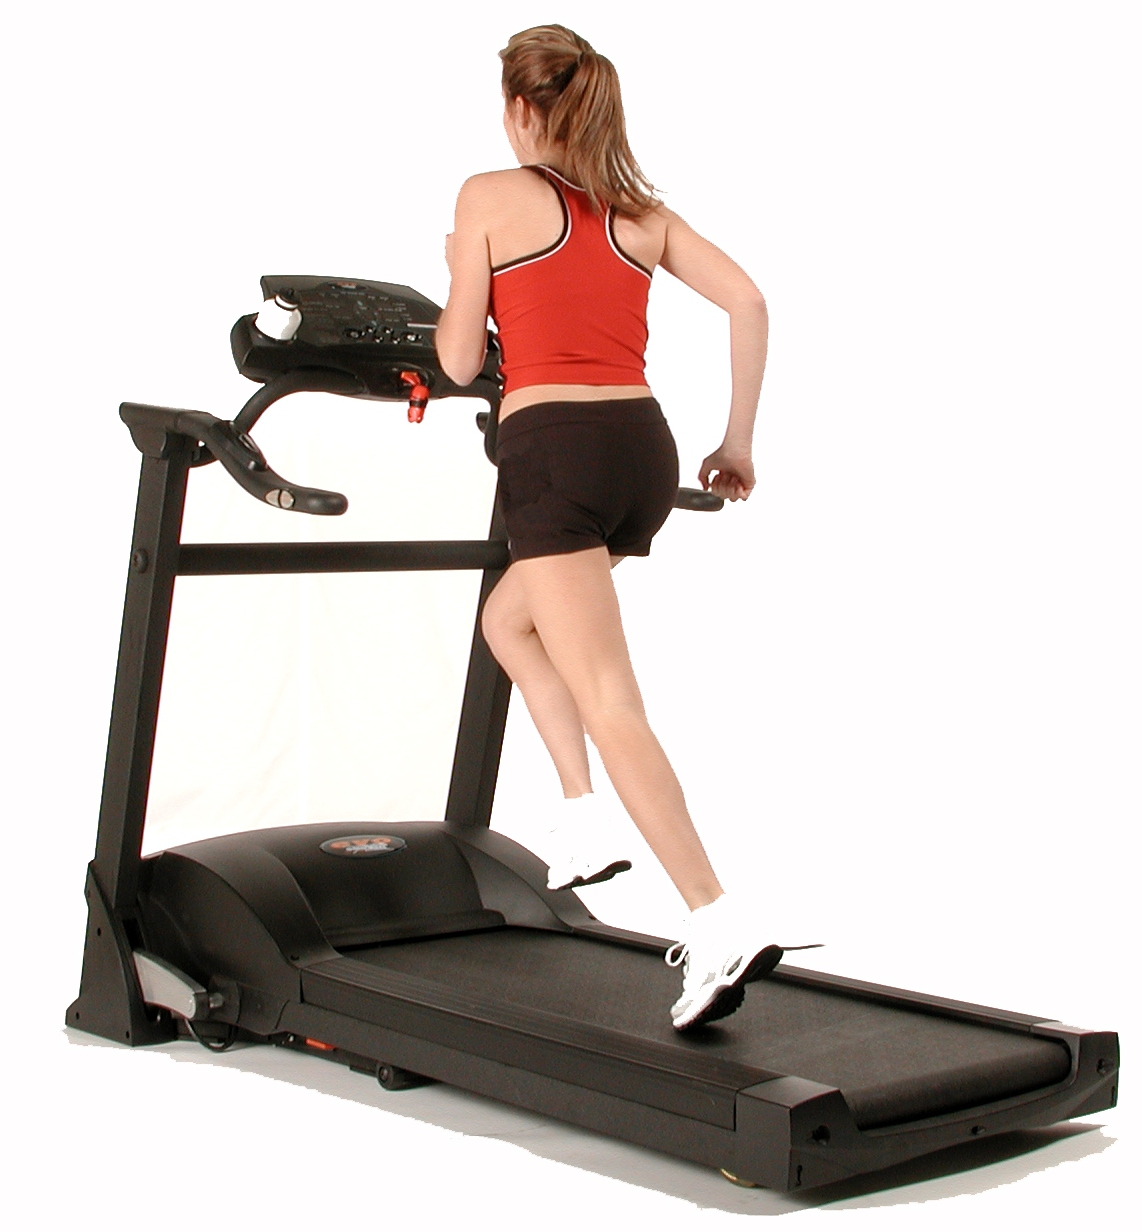 abdominal fitness, fitness equipment online, fitness elliptical trainers, aerobic fitness